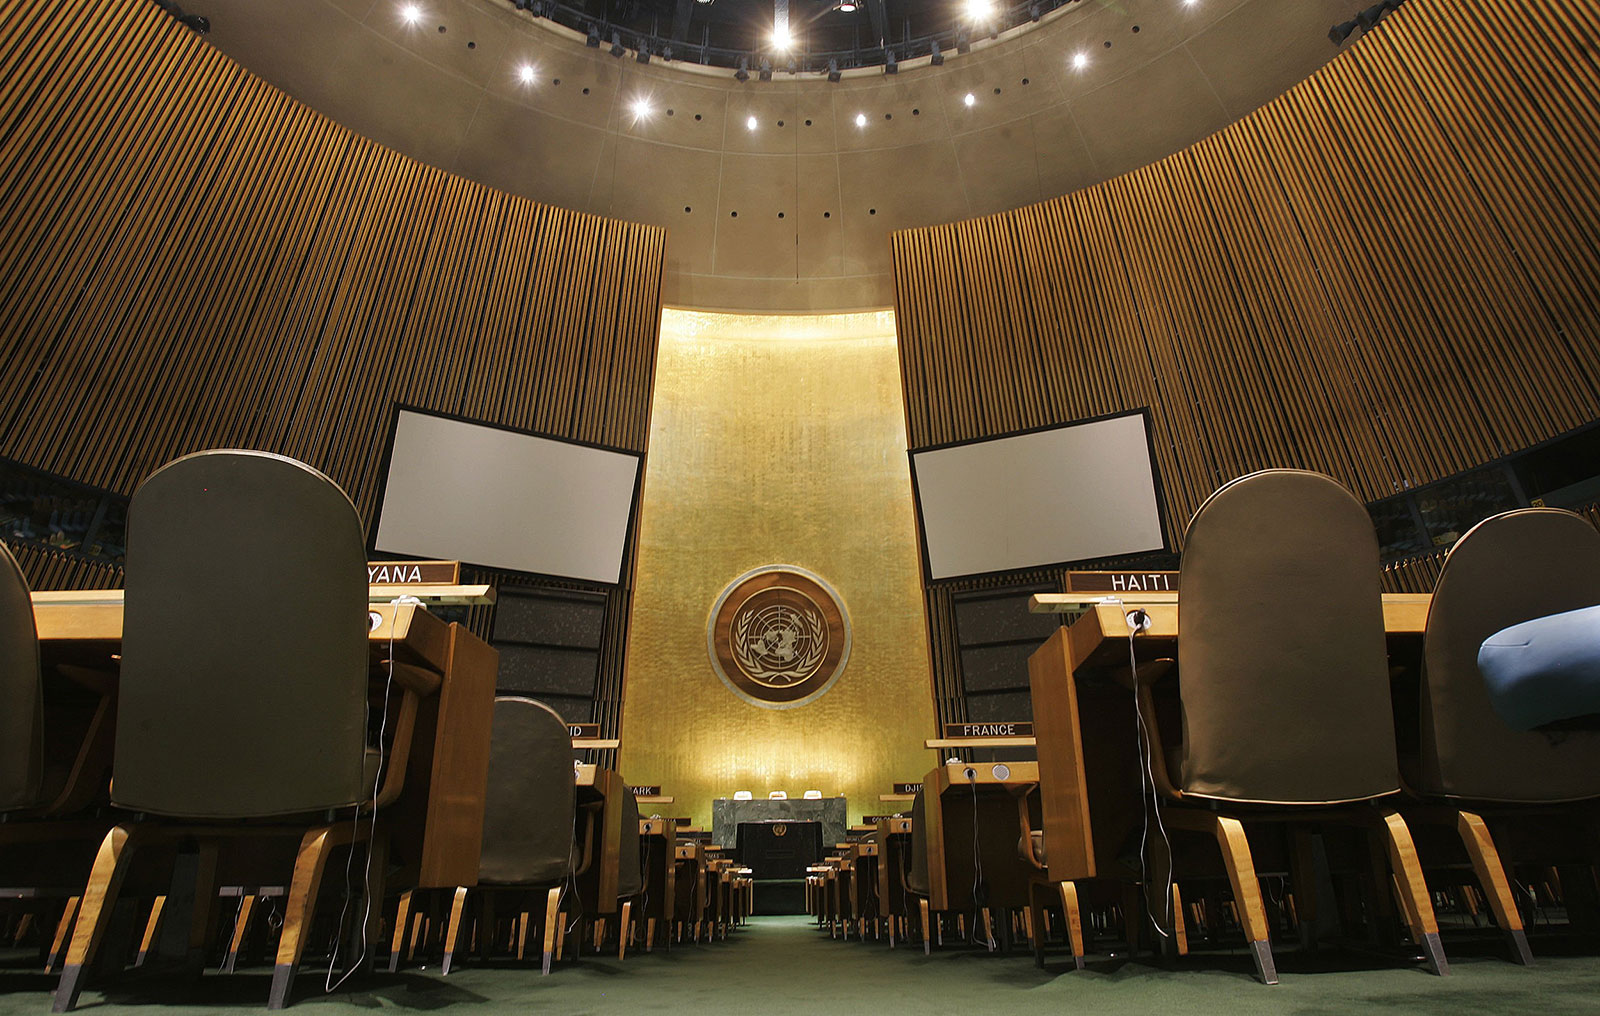 A view from inside the General Assembly Hall of the United Nations headquarters in New York